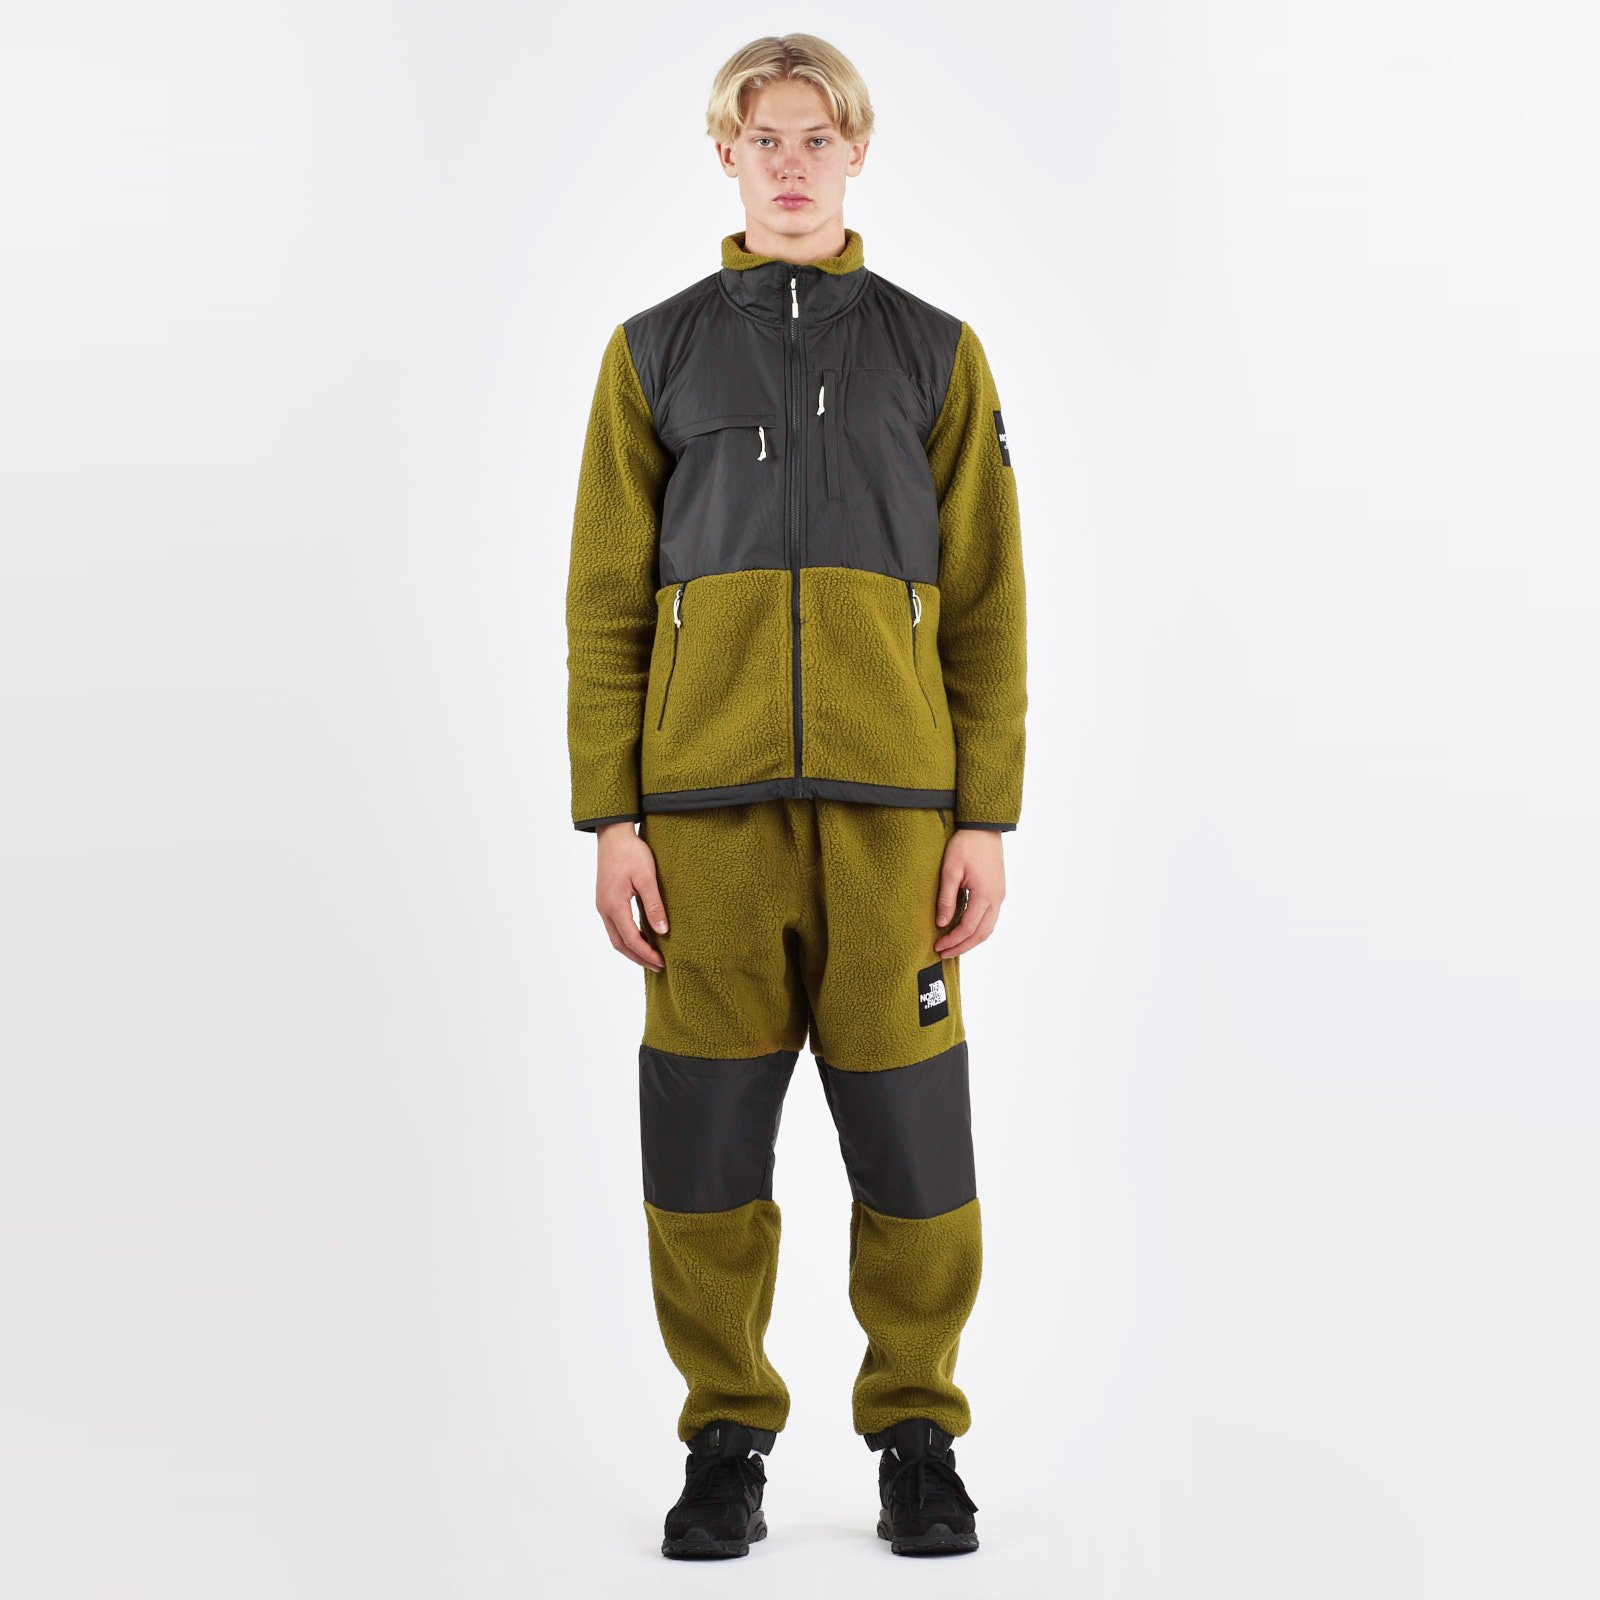 e67817520215 The North Face Denali Fleece Pant - T93l2jbebreg - Sneakersnstuff ...